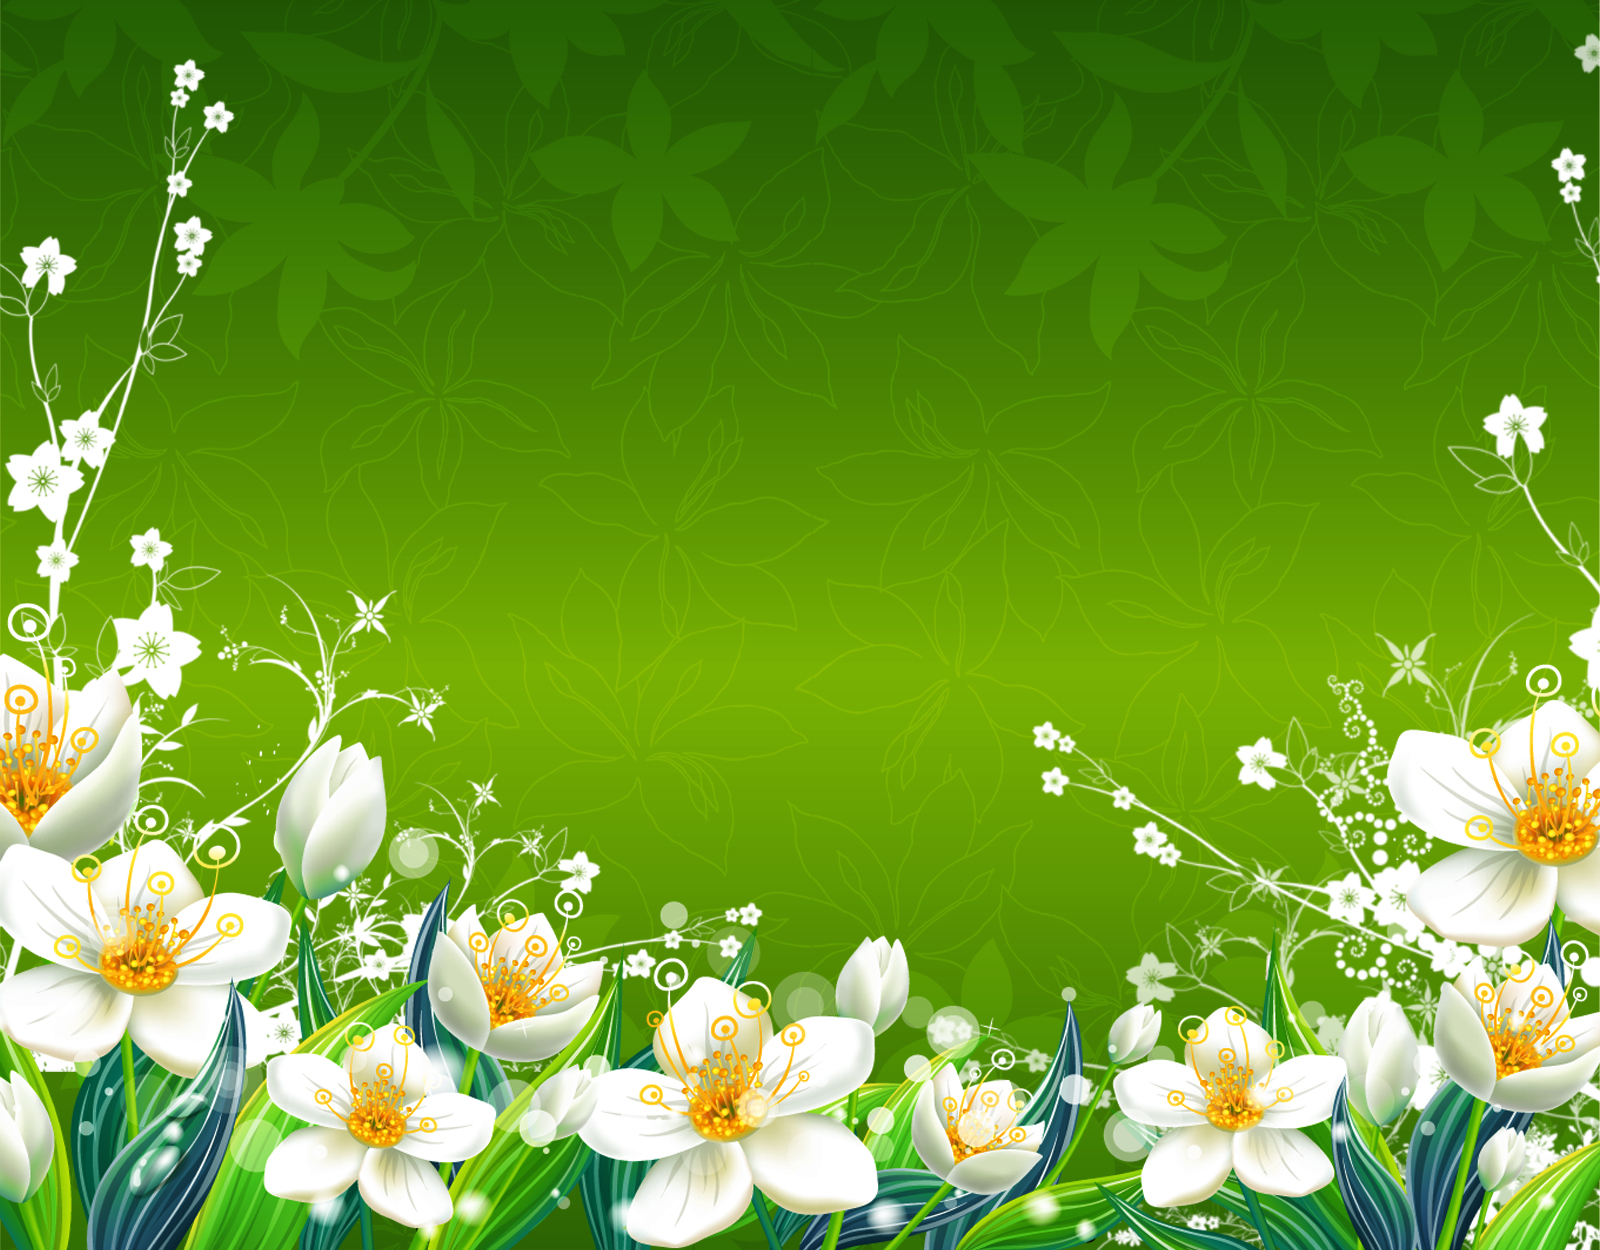 Green Flowers Wallpaper 1600x1250 Green Flowers Spring Floral 1600x1250